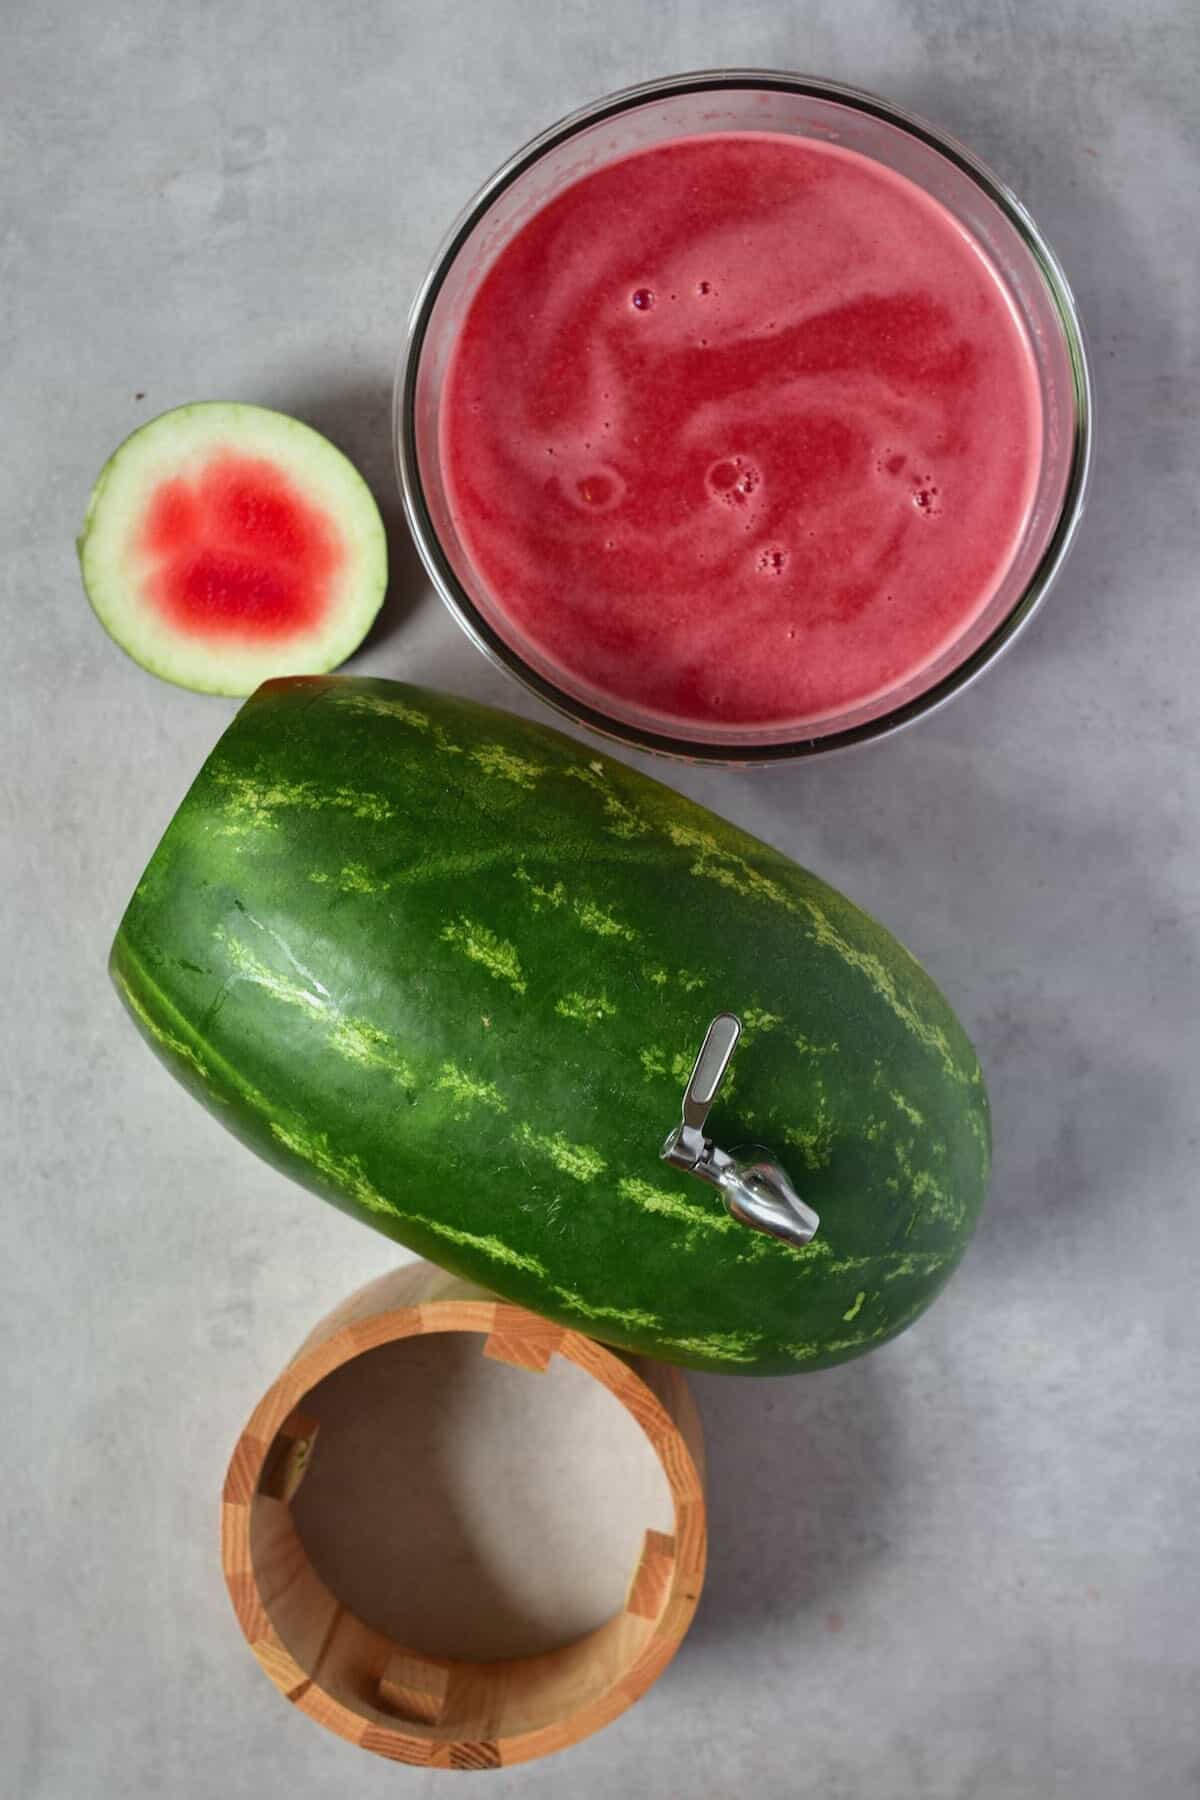 Watermelon keg and juice in a bowl